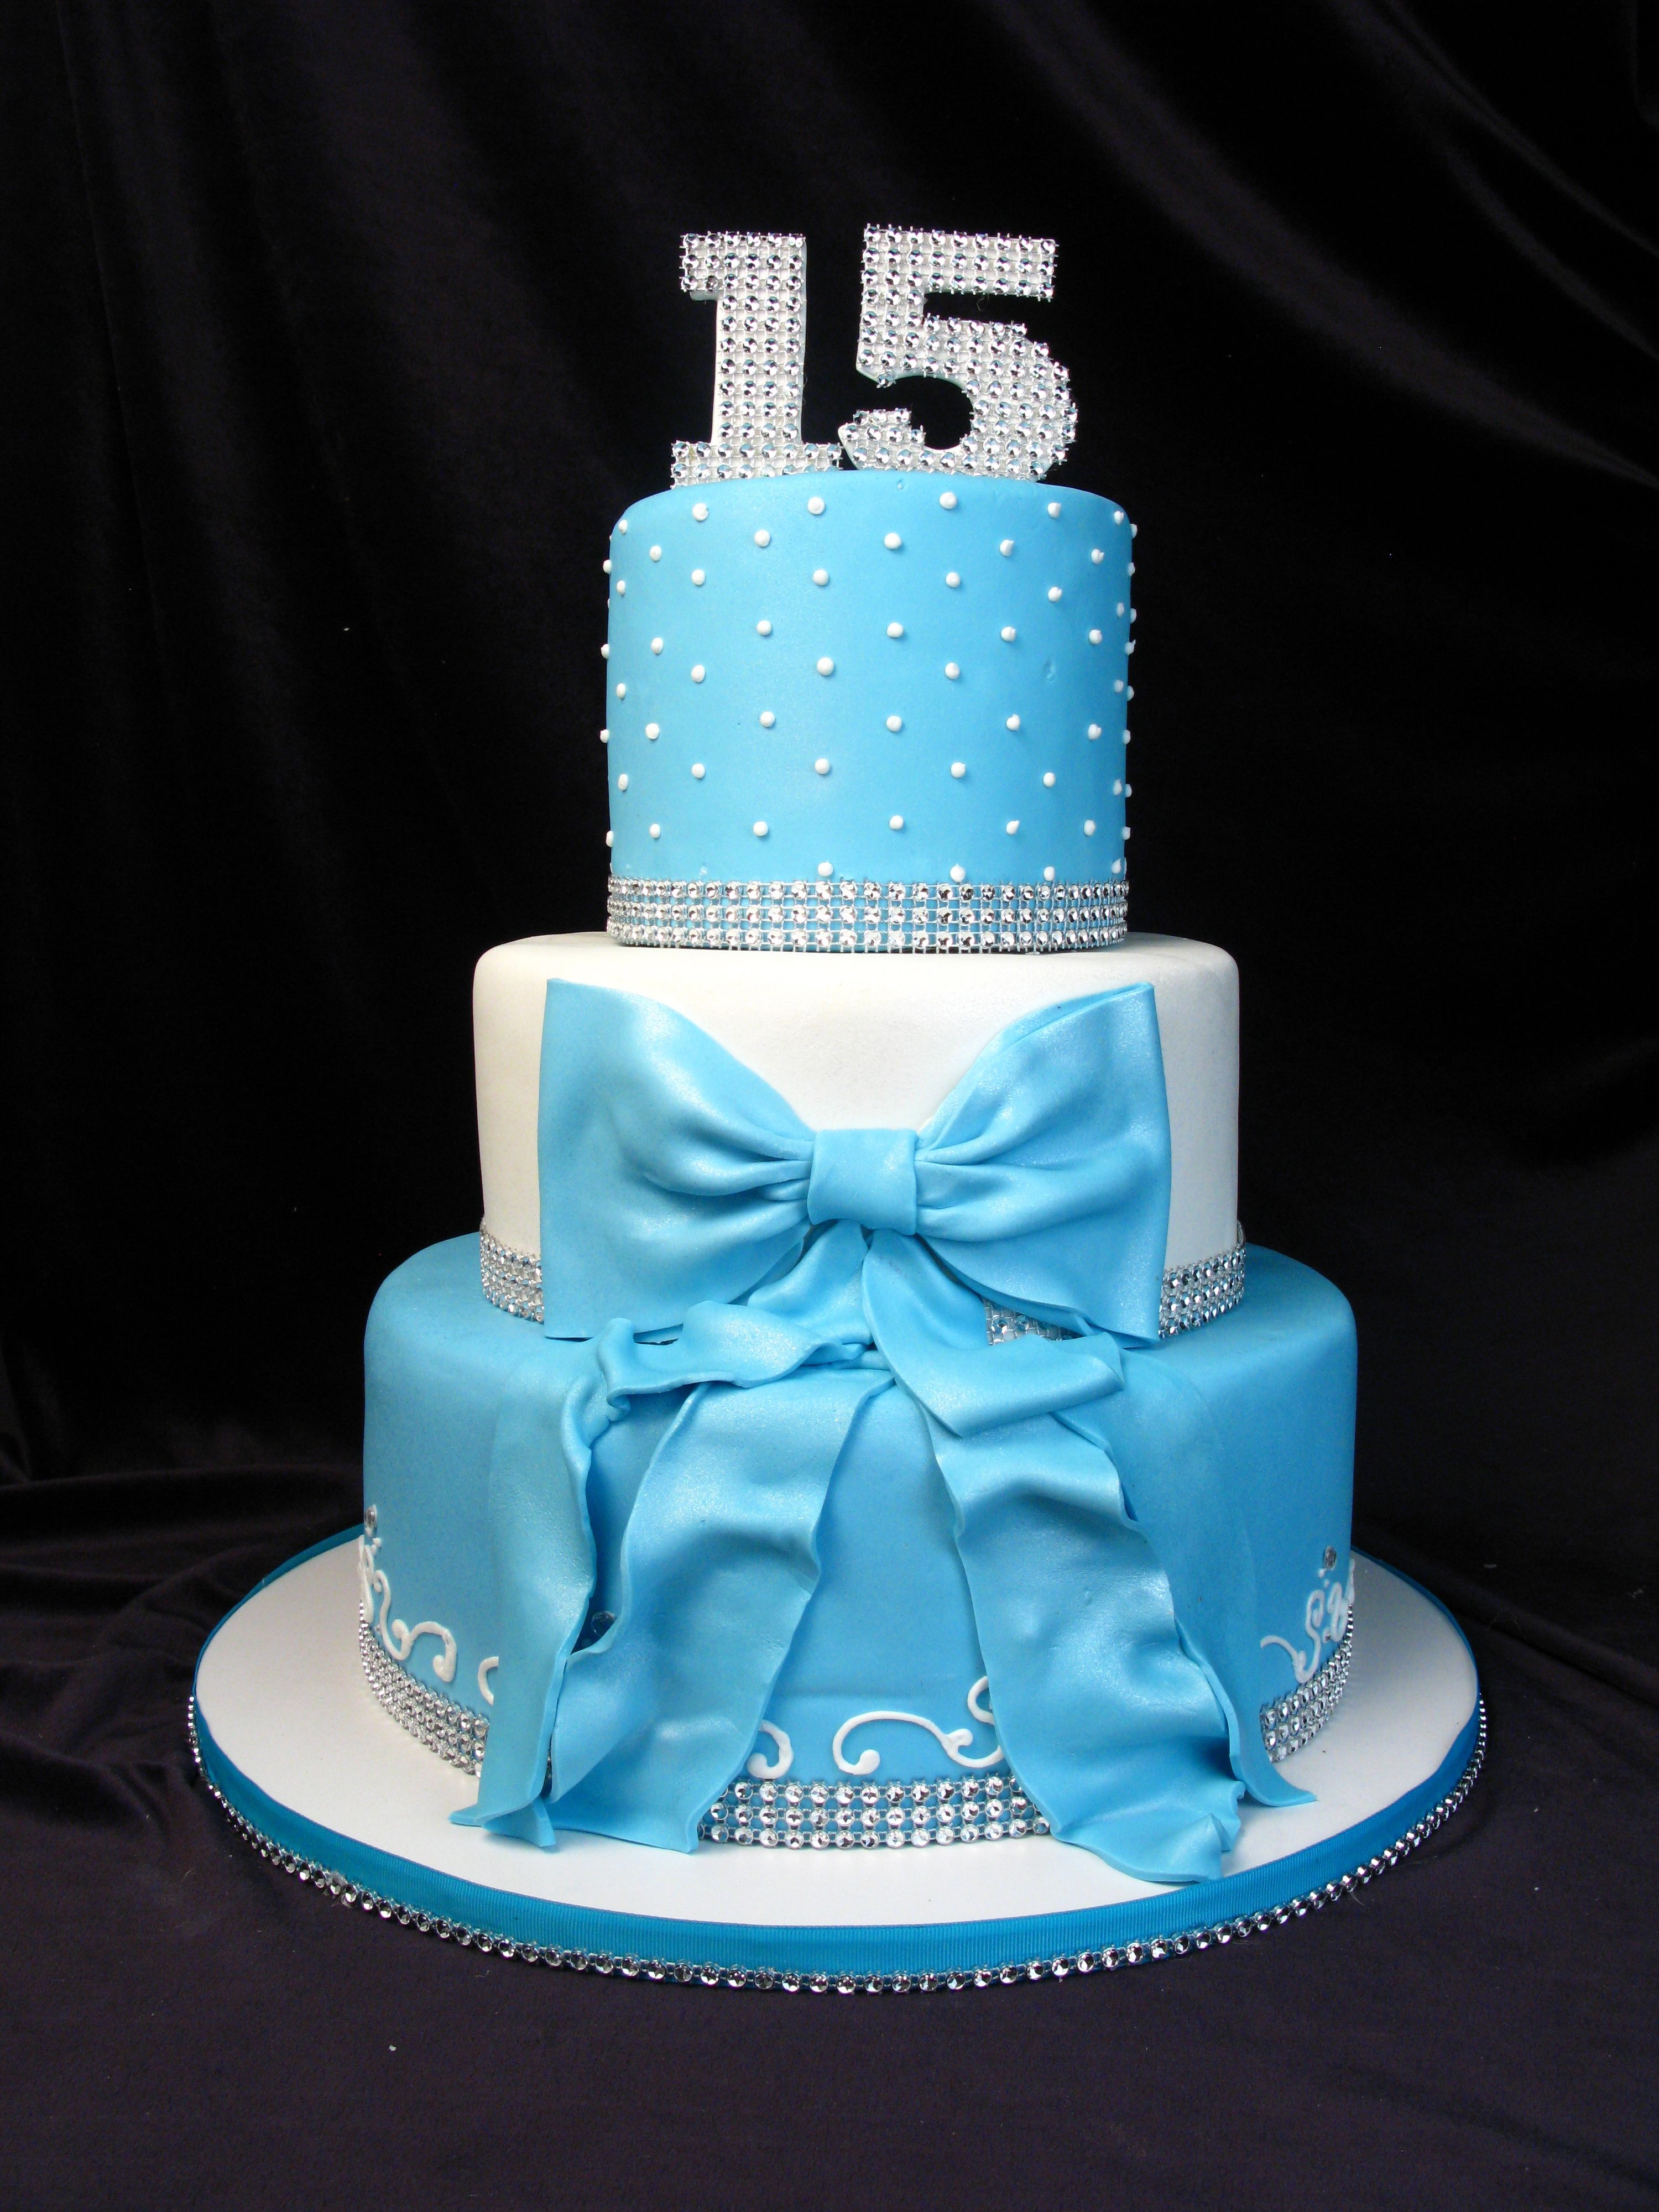 1000+ images about quinceanera ideas on Pinterest